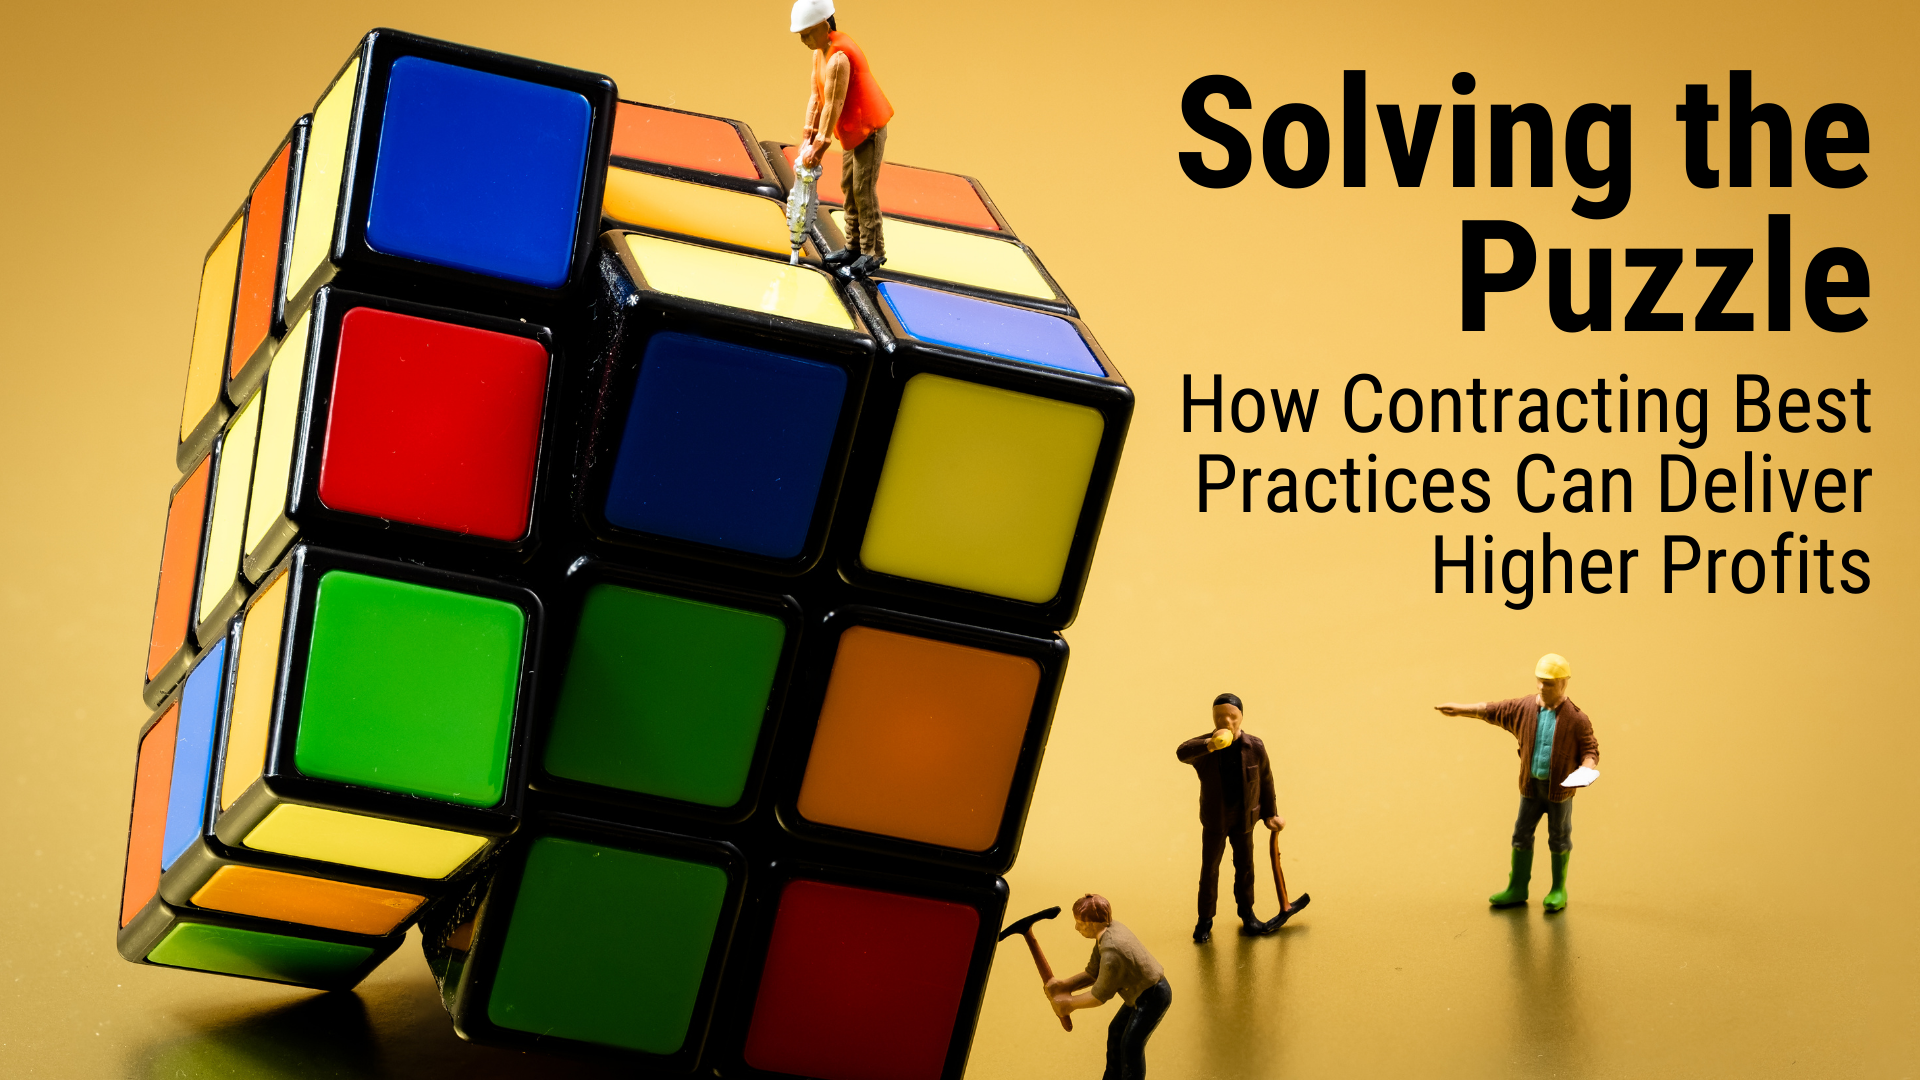 Solving the Puzzle: How Contracting Best Practices Can Deliver Higher Profits